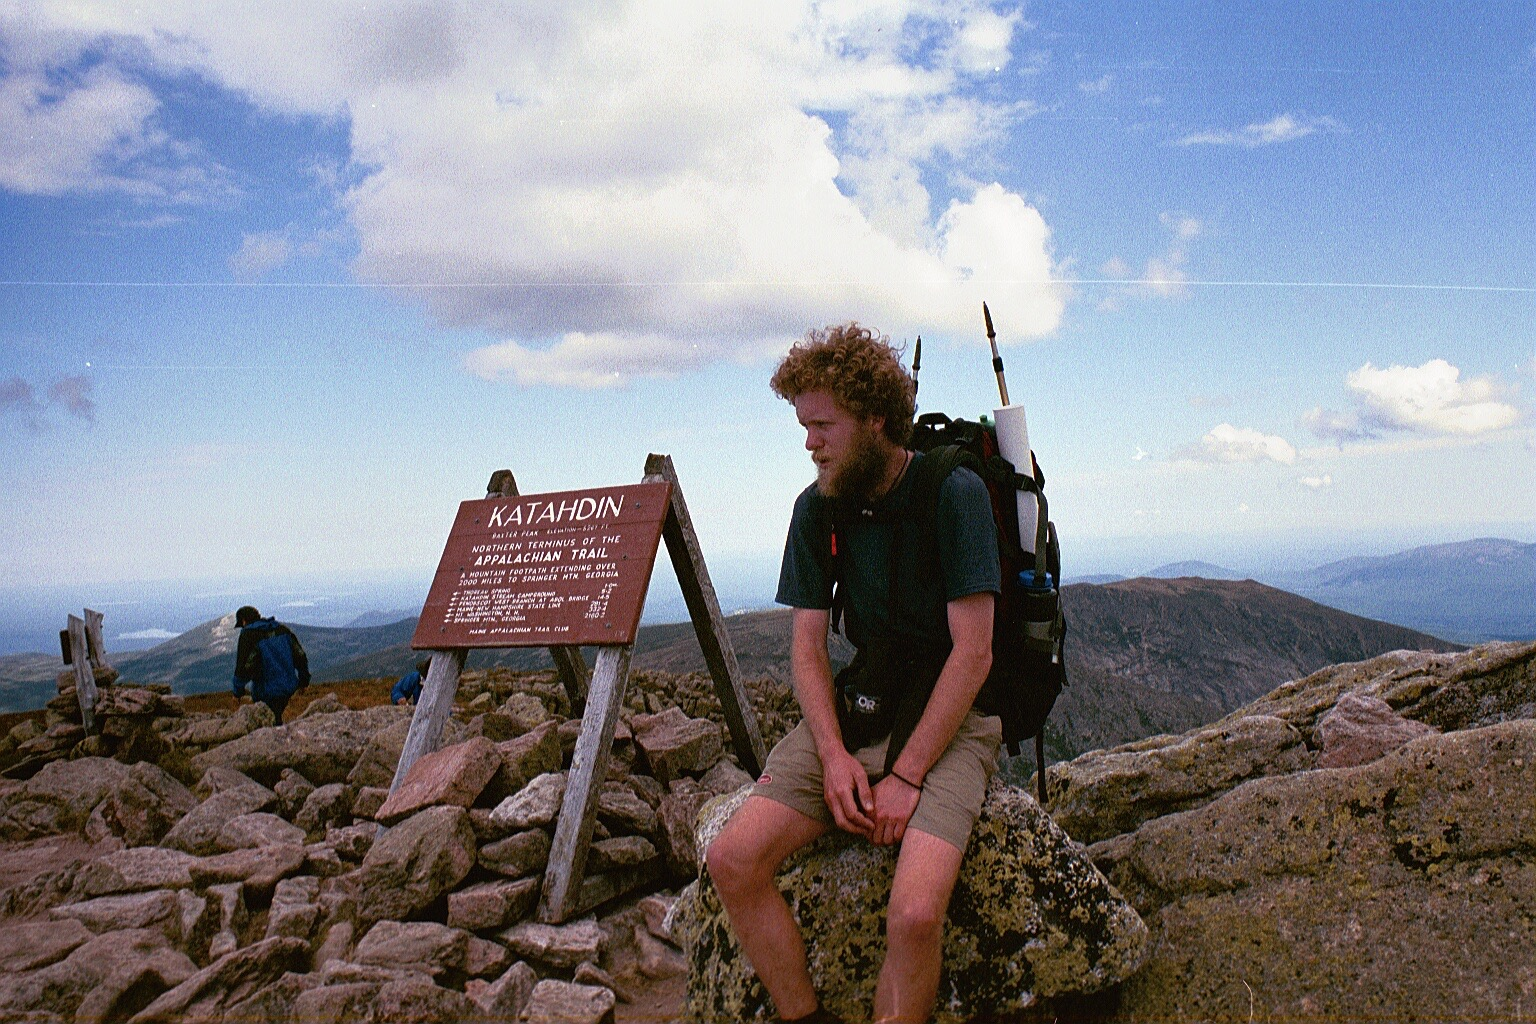 Craig Fowler Appalachian trail thru-hike finish - Mt. Katahdin Maine